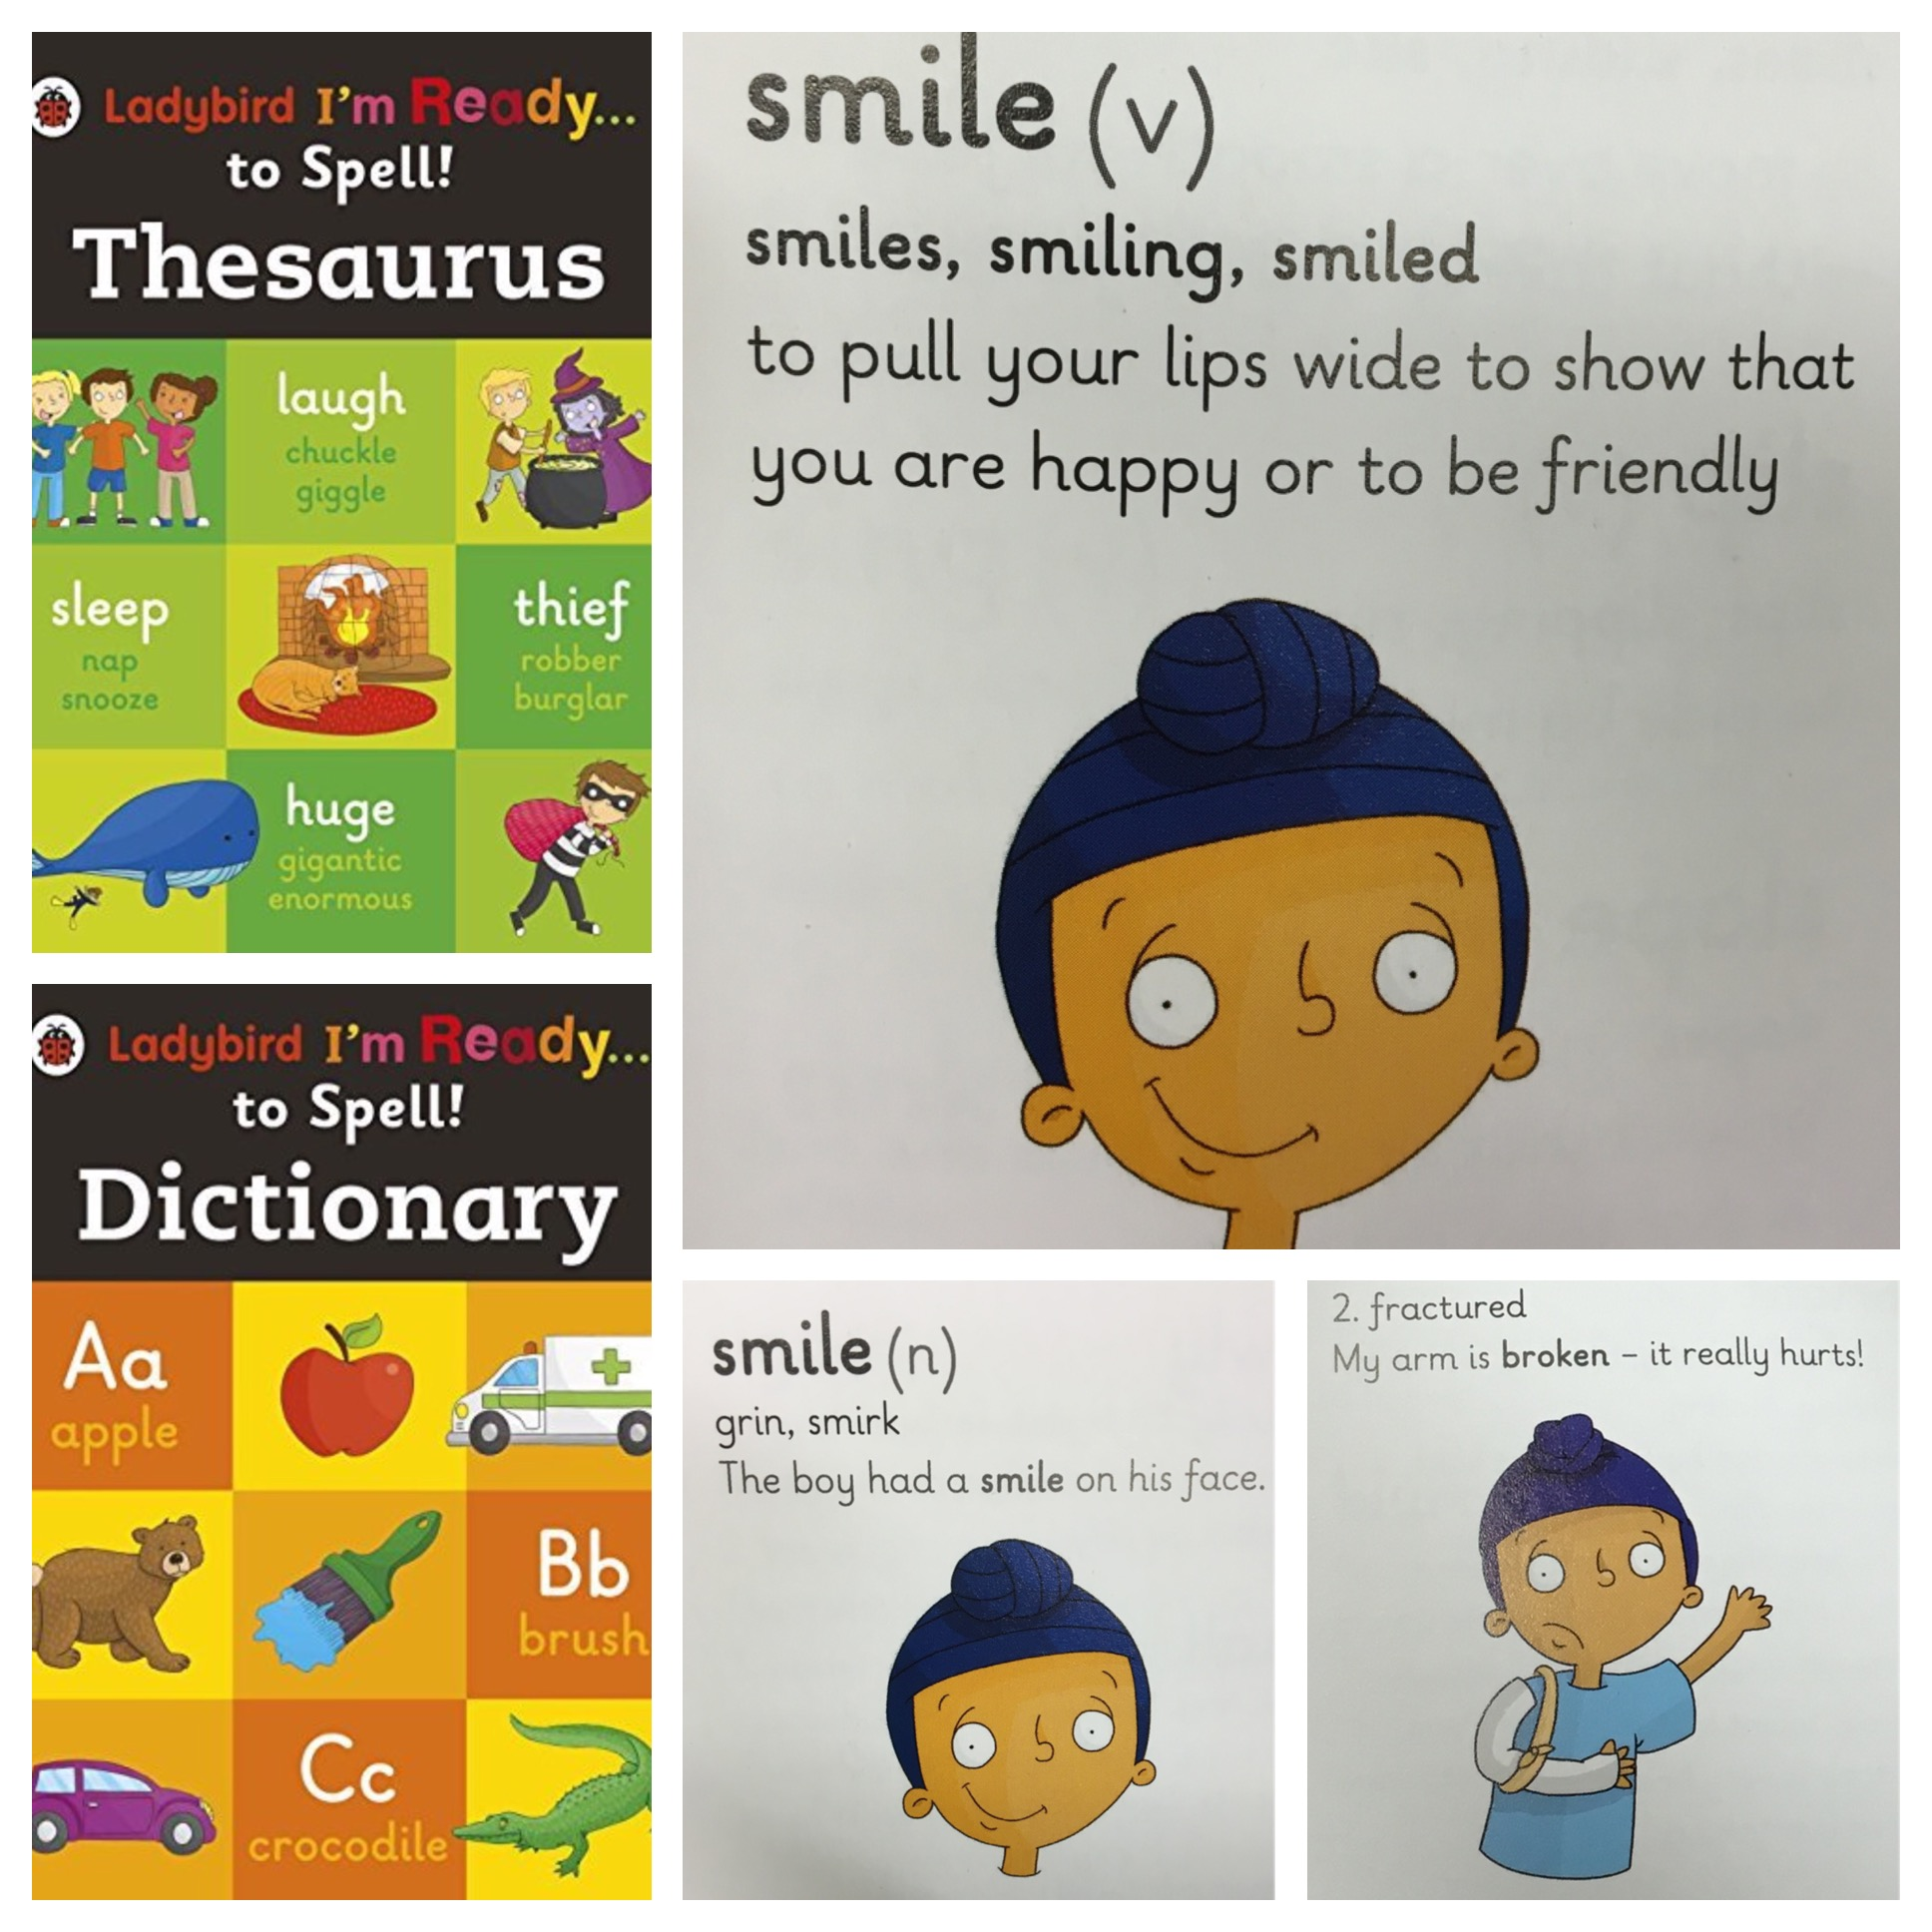 Ladybird Thesaurus & Dictionary - Little Singh character